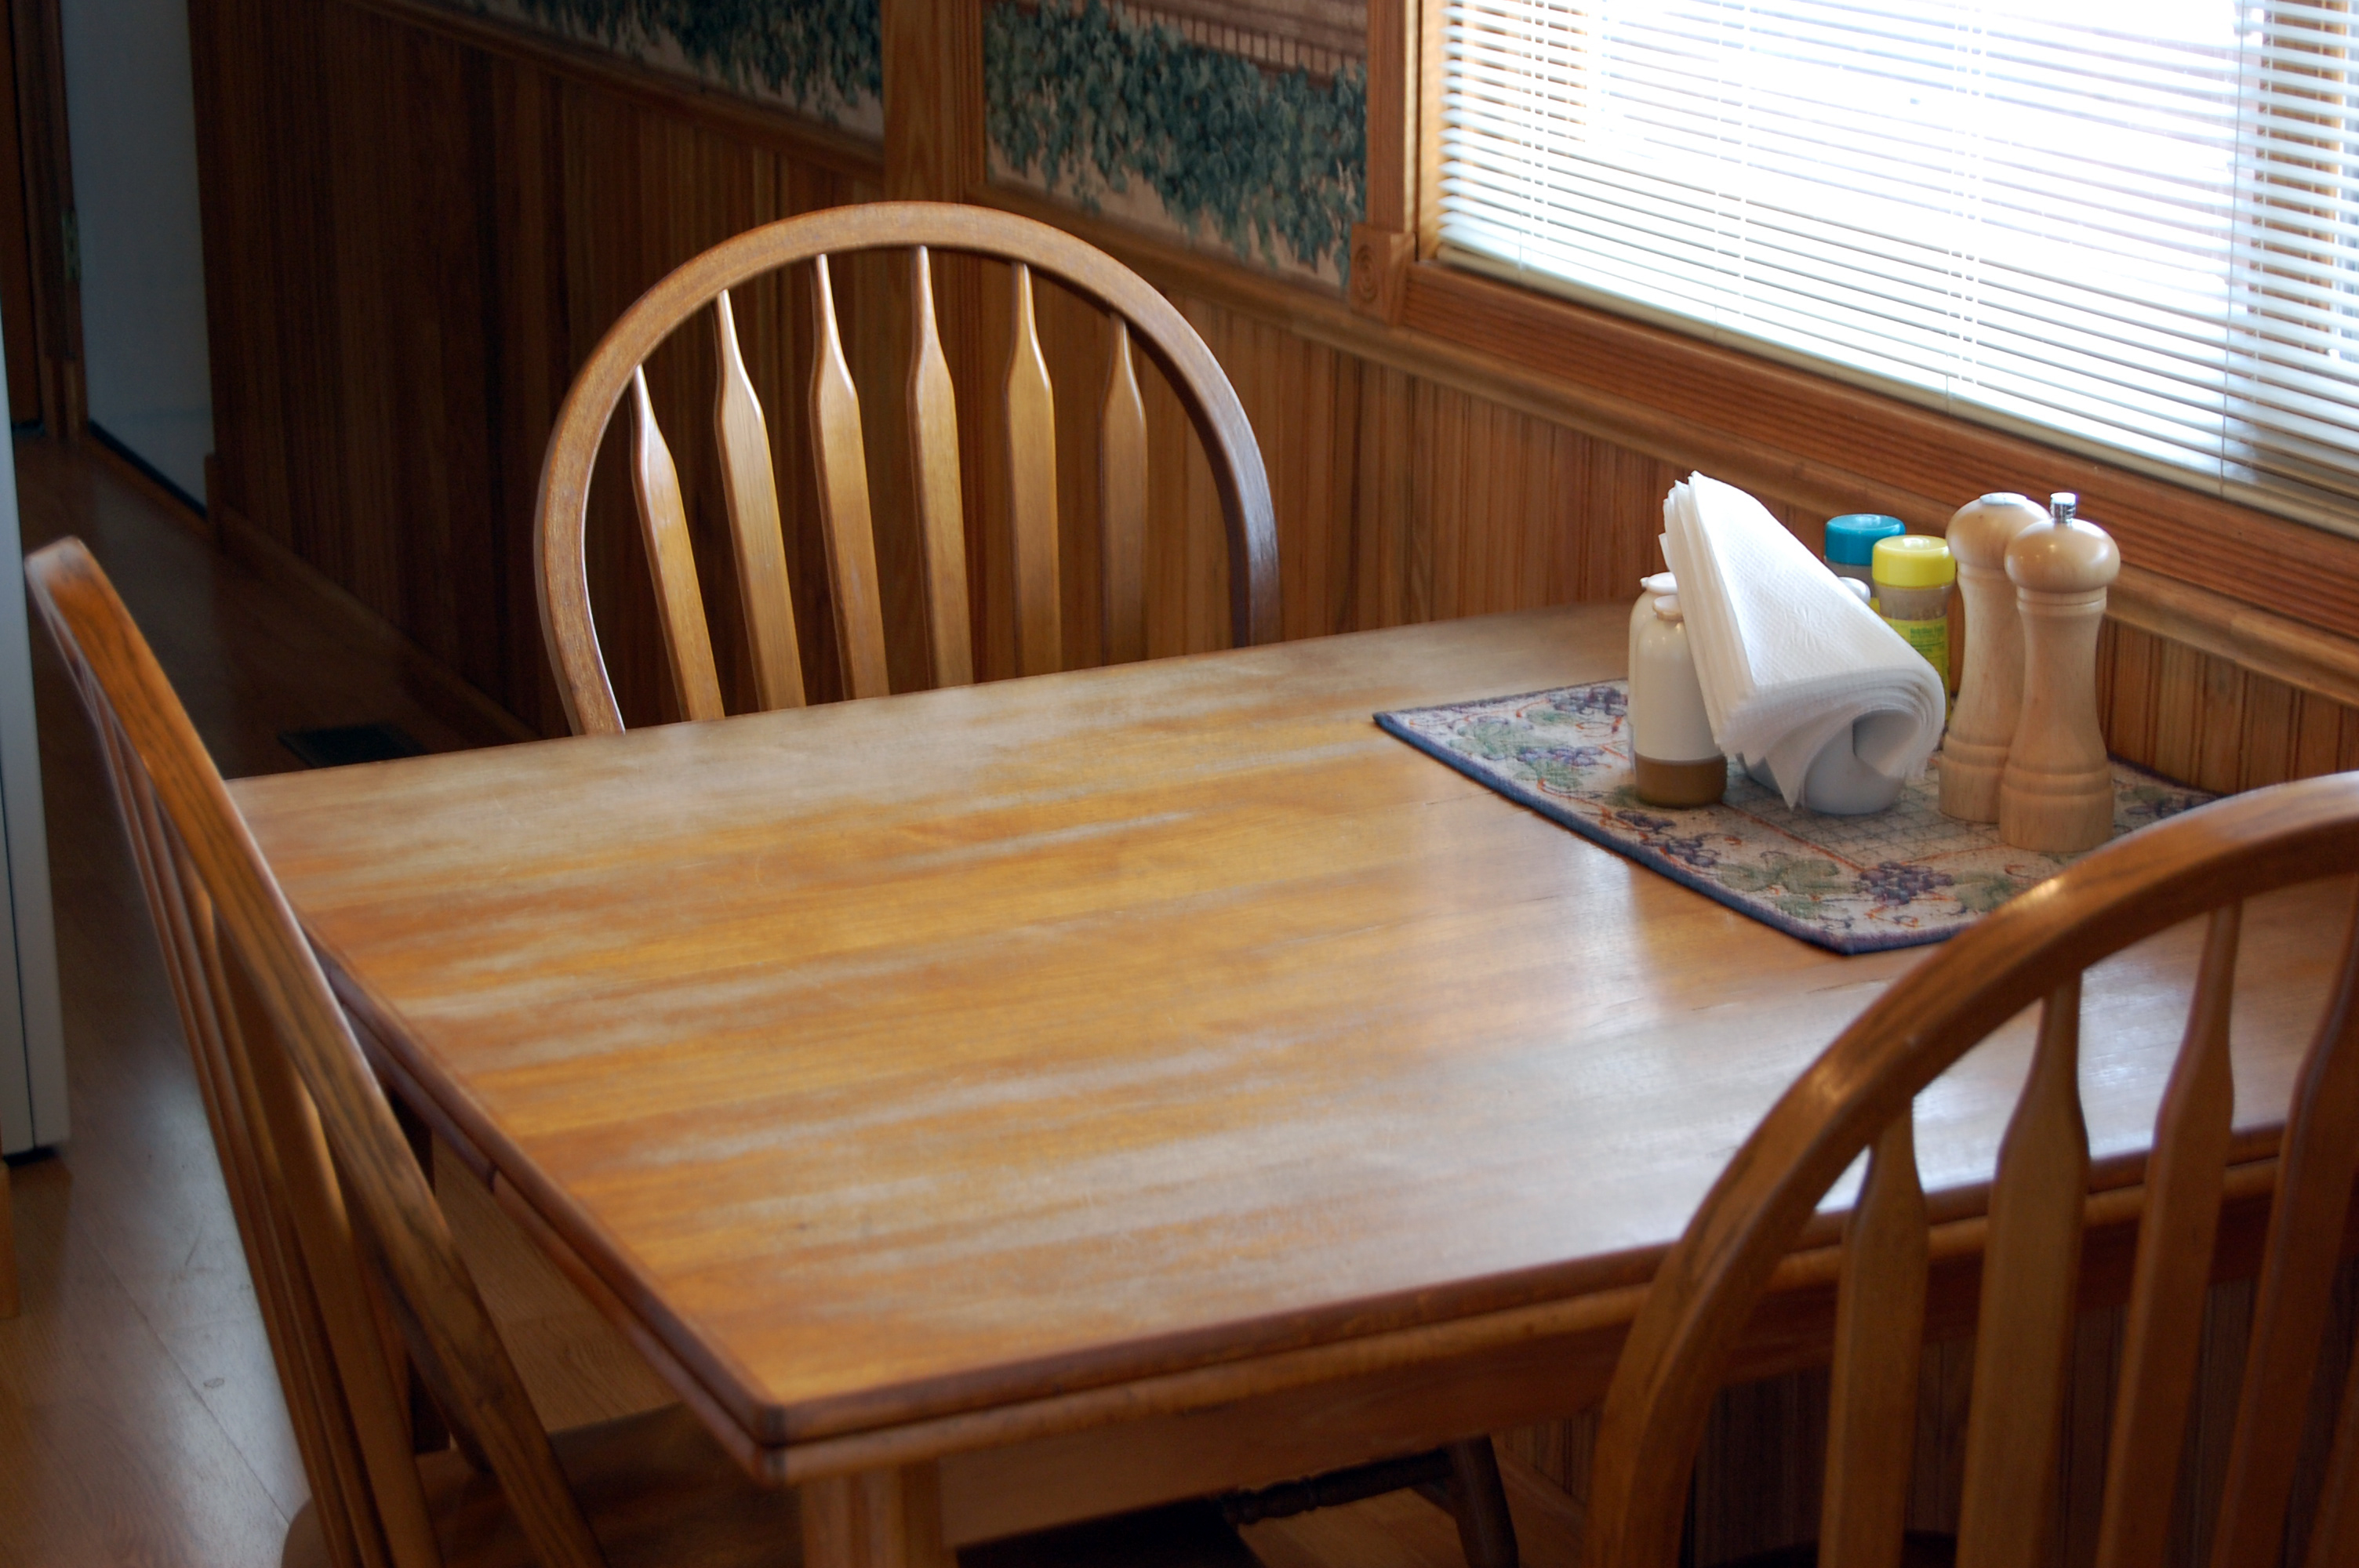 Kitchen table with chairs photo - 3